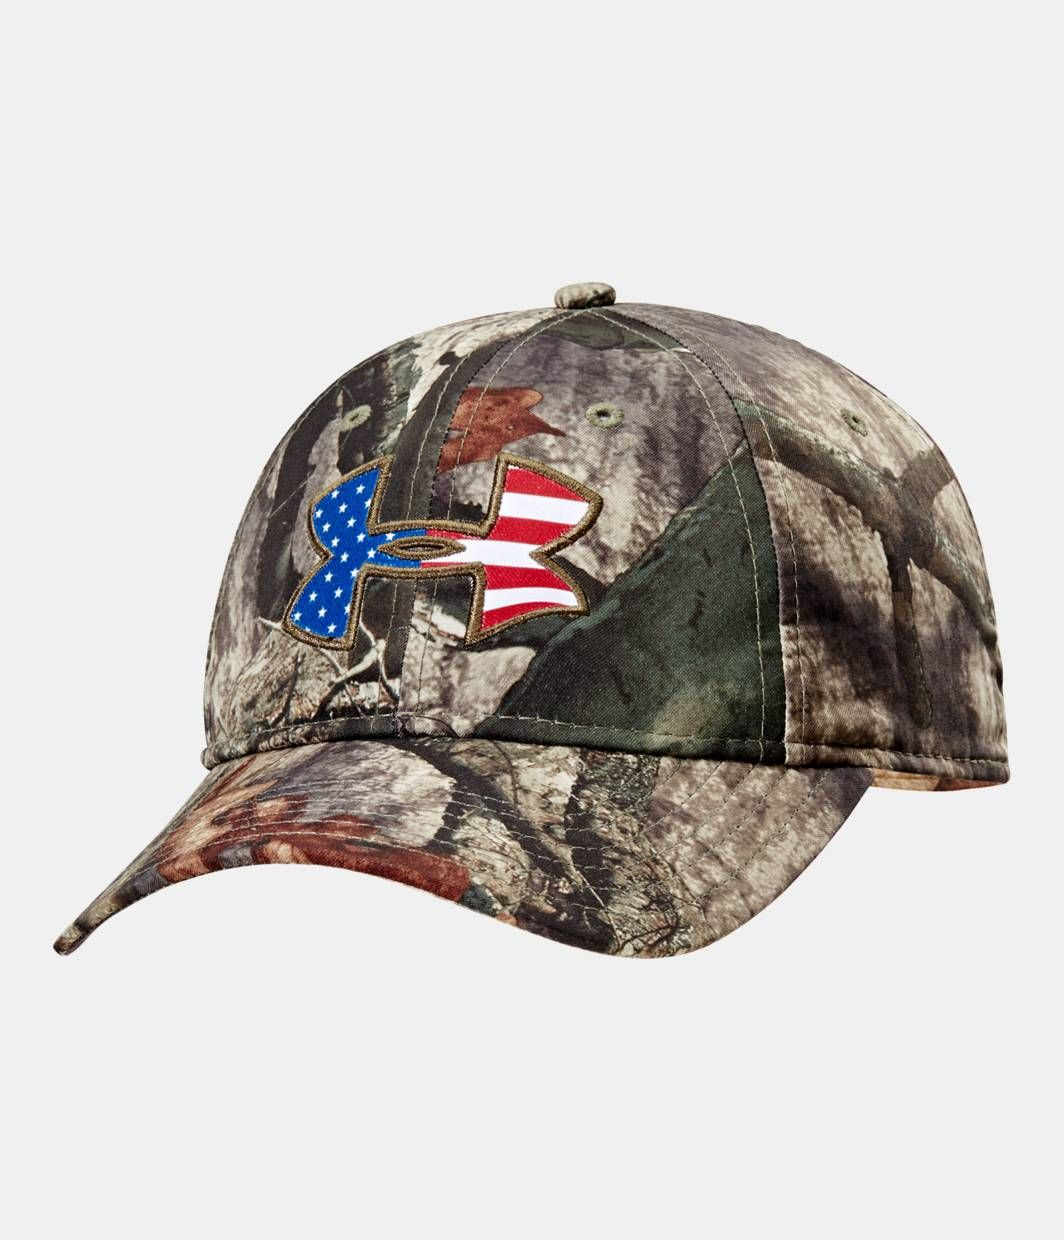 582db0a4d0a Shop Under Armour for Men s UA Big Logo Americana Camo Cap in our Mens  Headwear department. Free shipping is available in US.